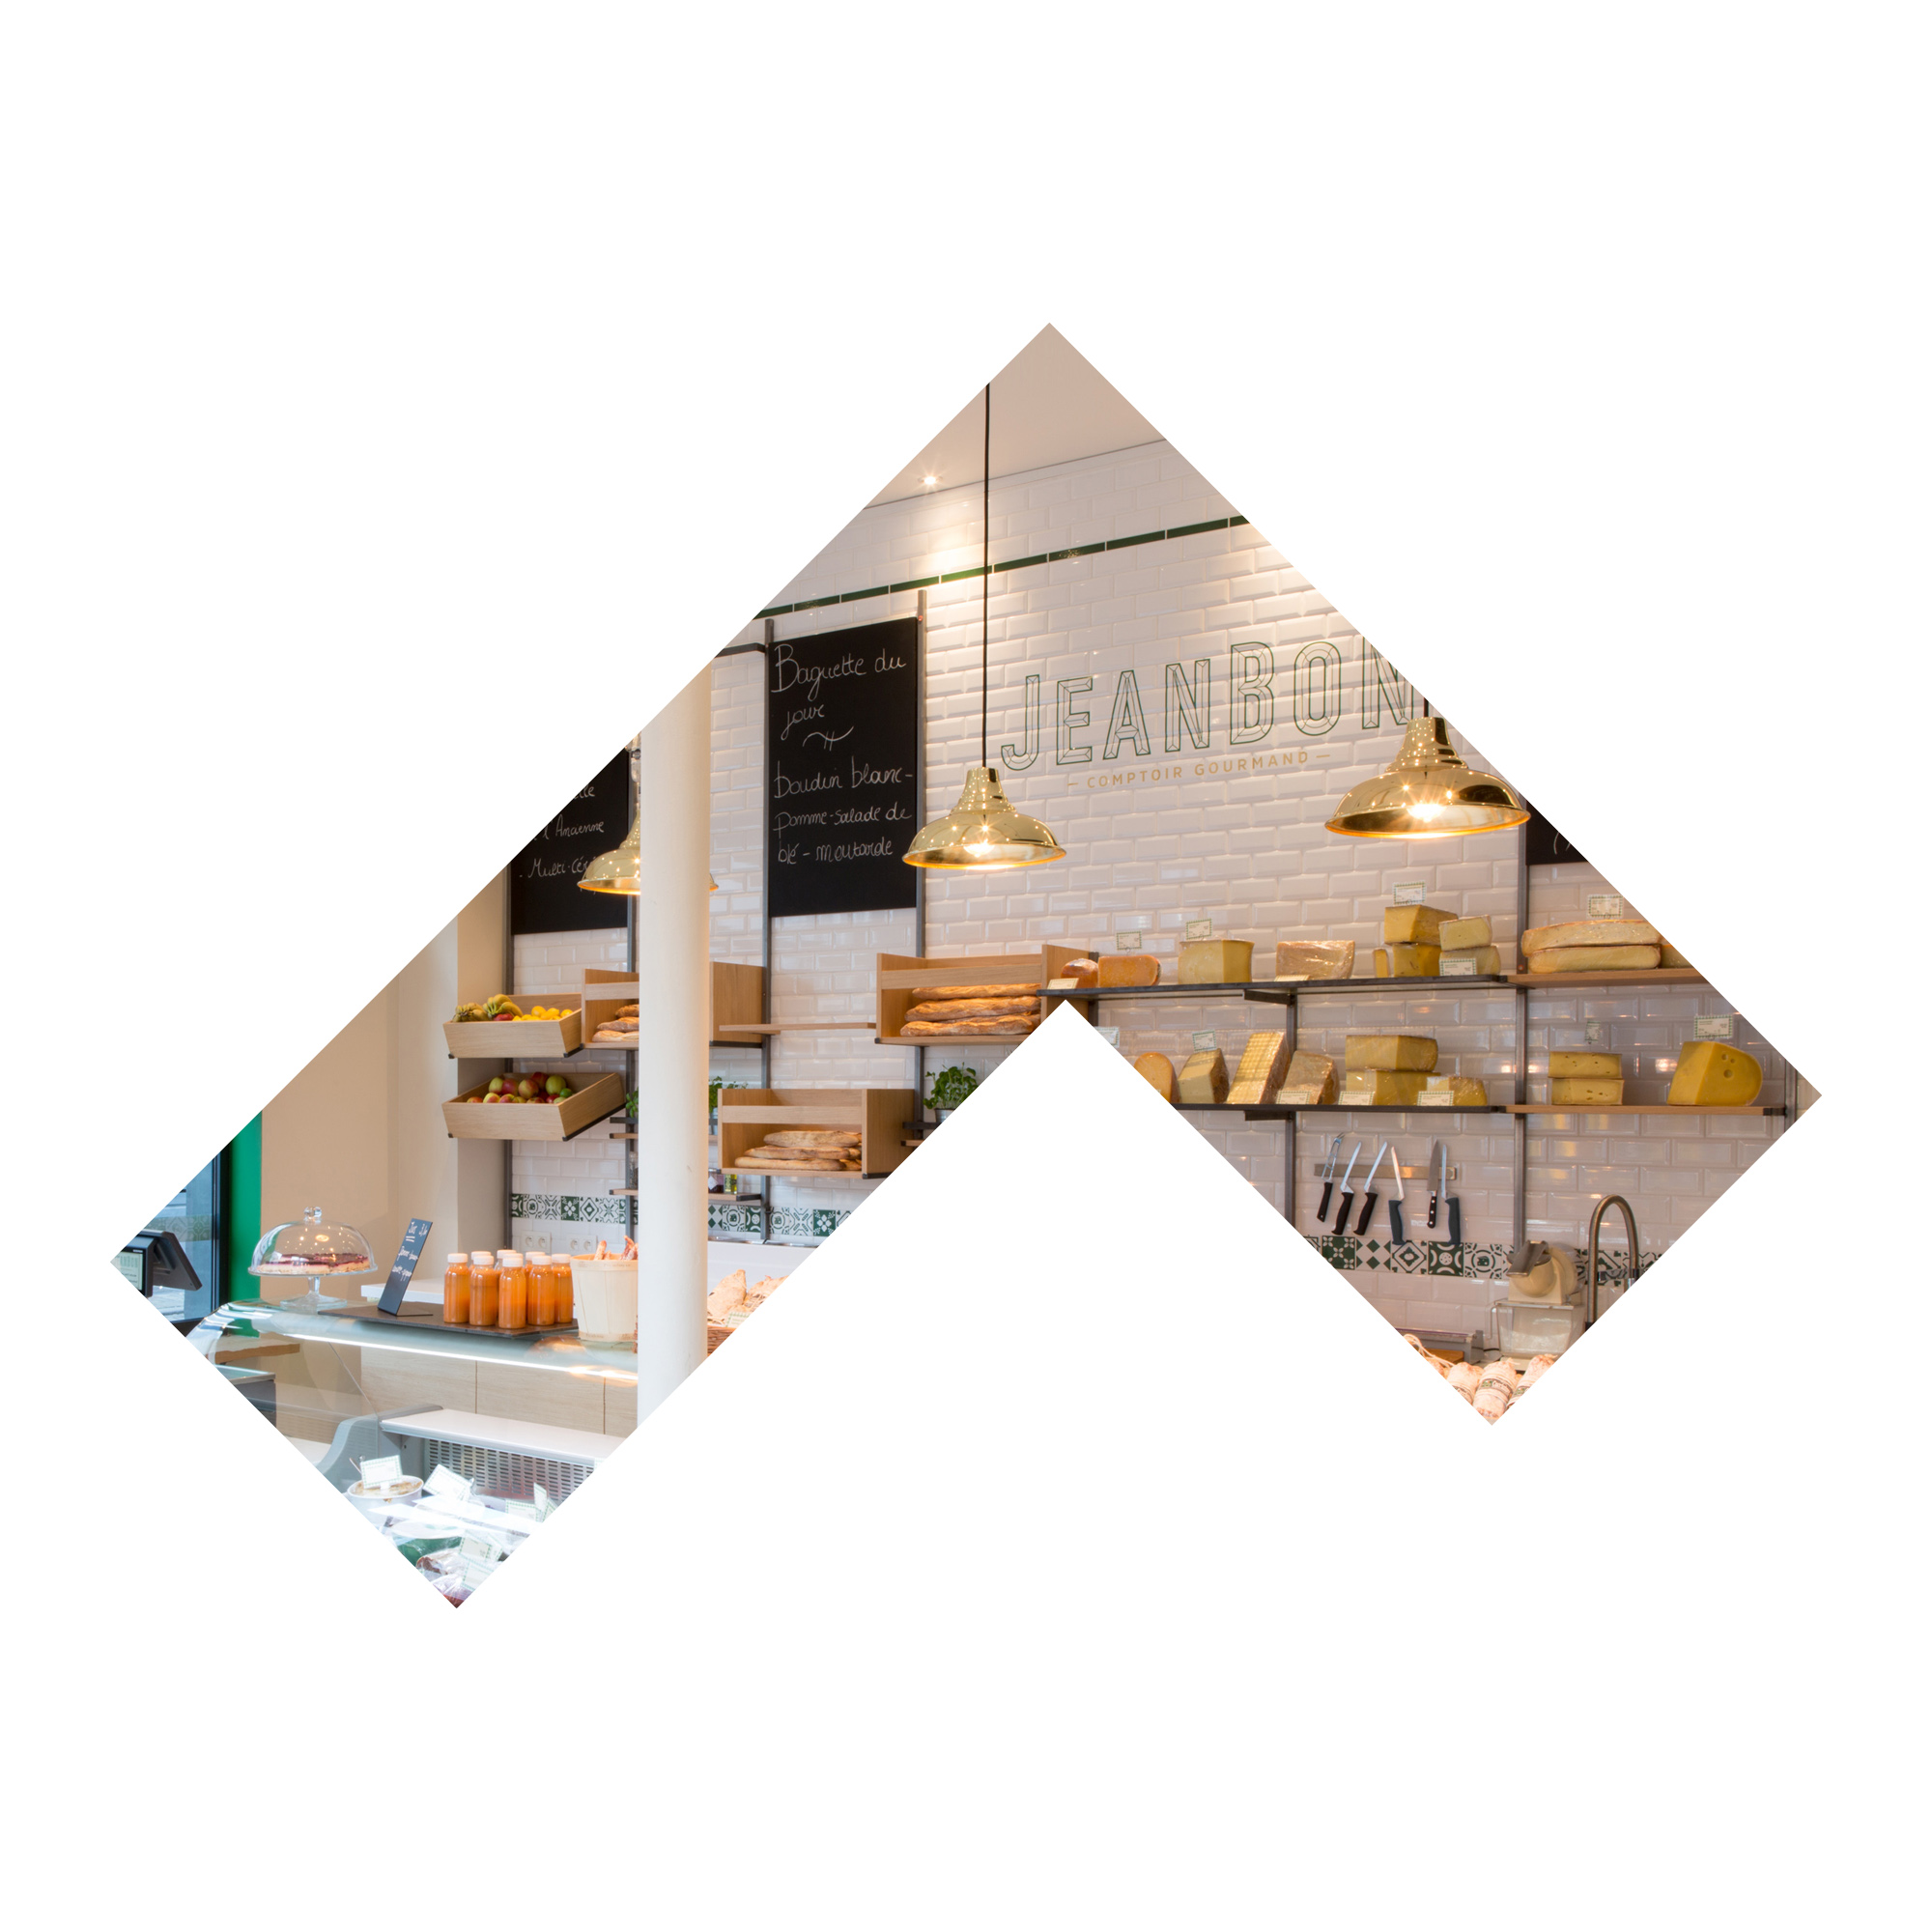 JEANBON - Interior design for Jeanbon 'Comptoir Gourmand'Defining a warm, elegantand recognisable material palletCo-creation with wewantmore.studio